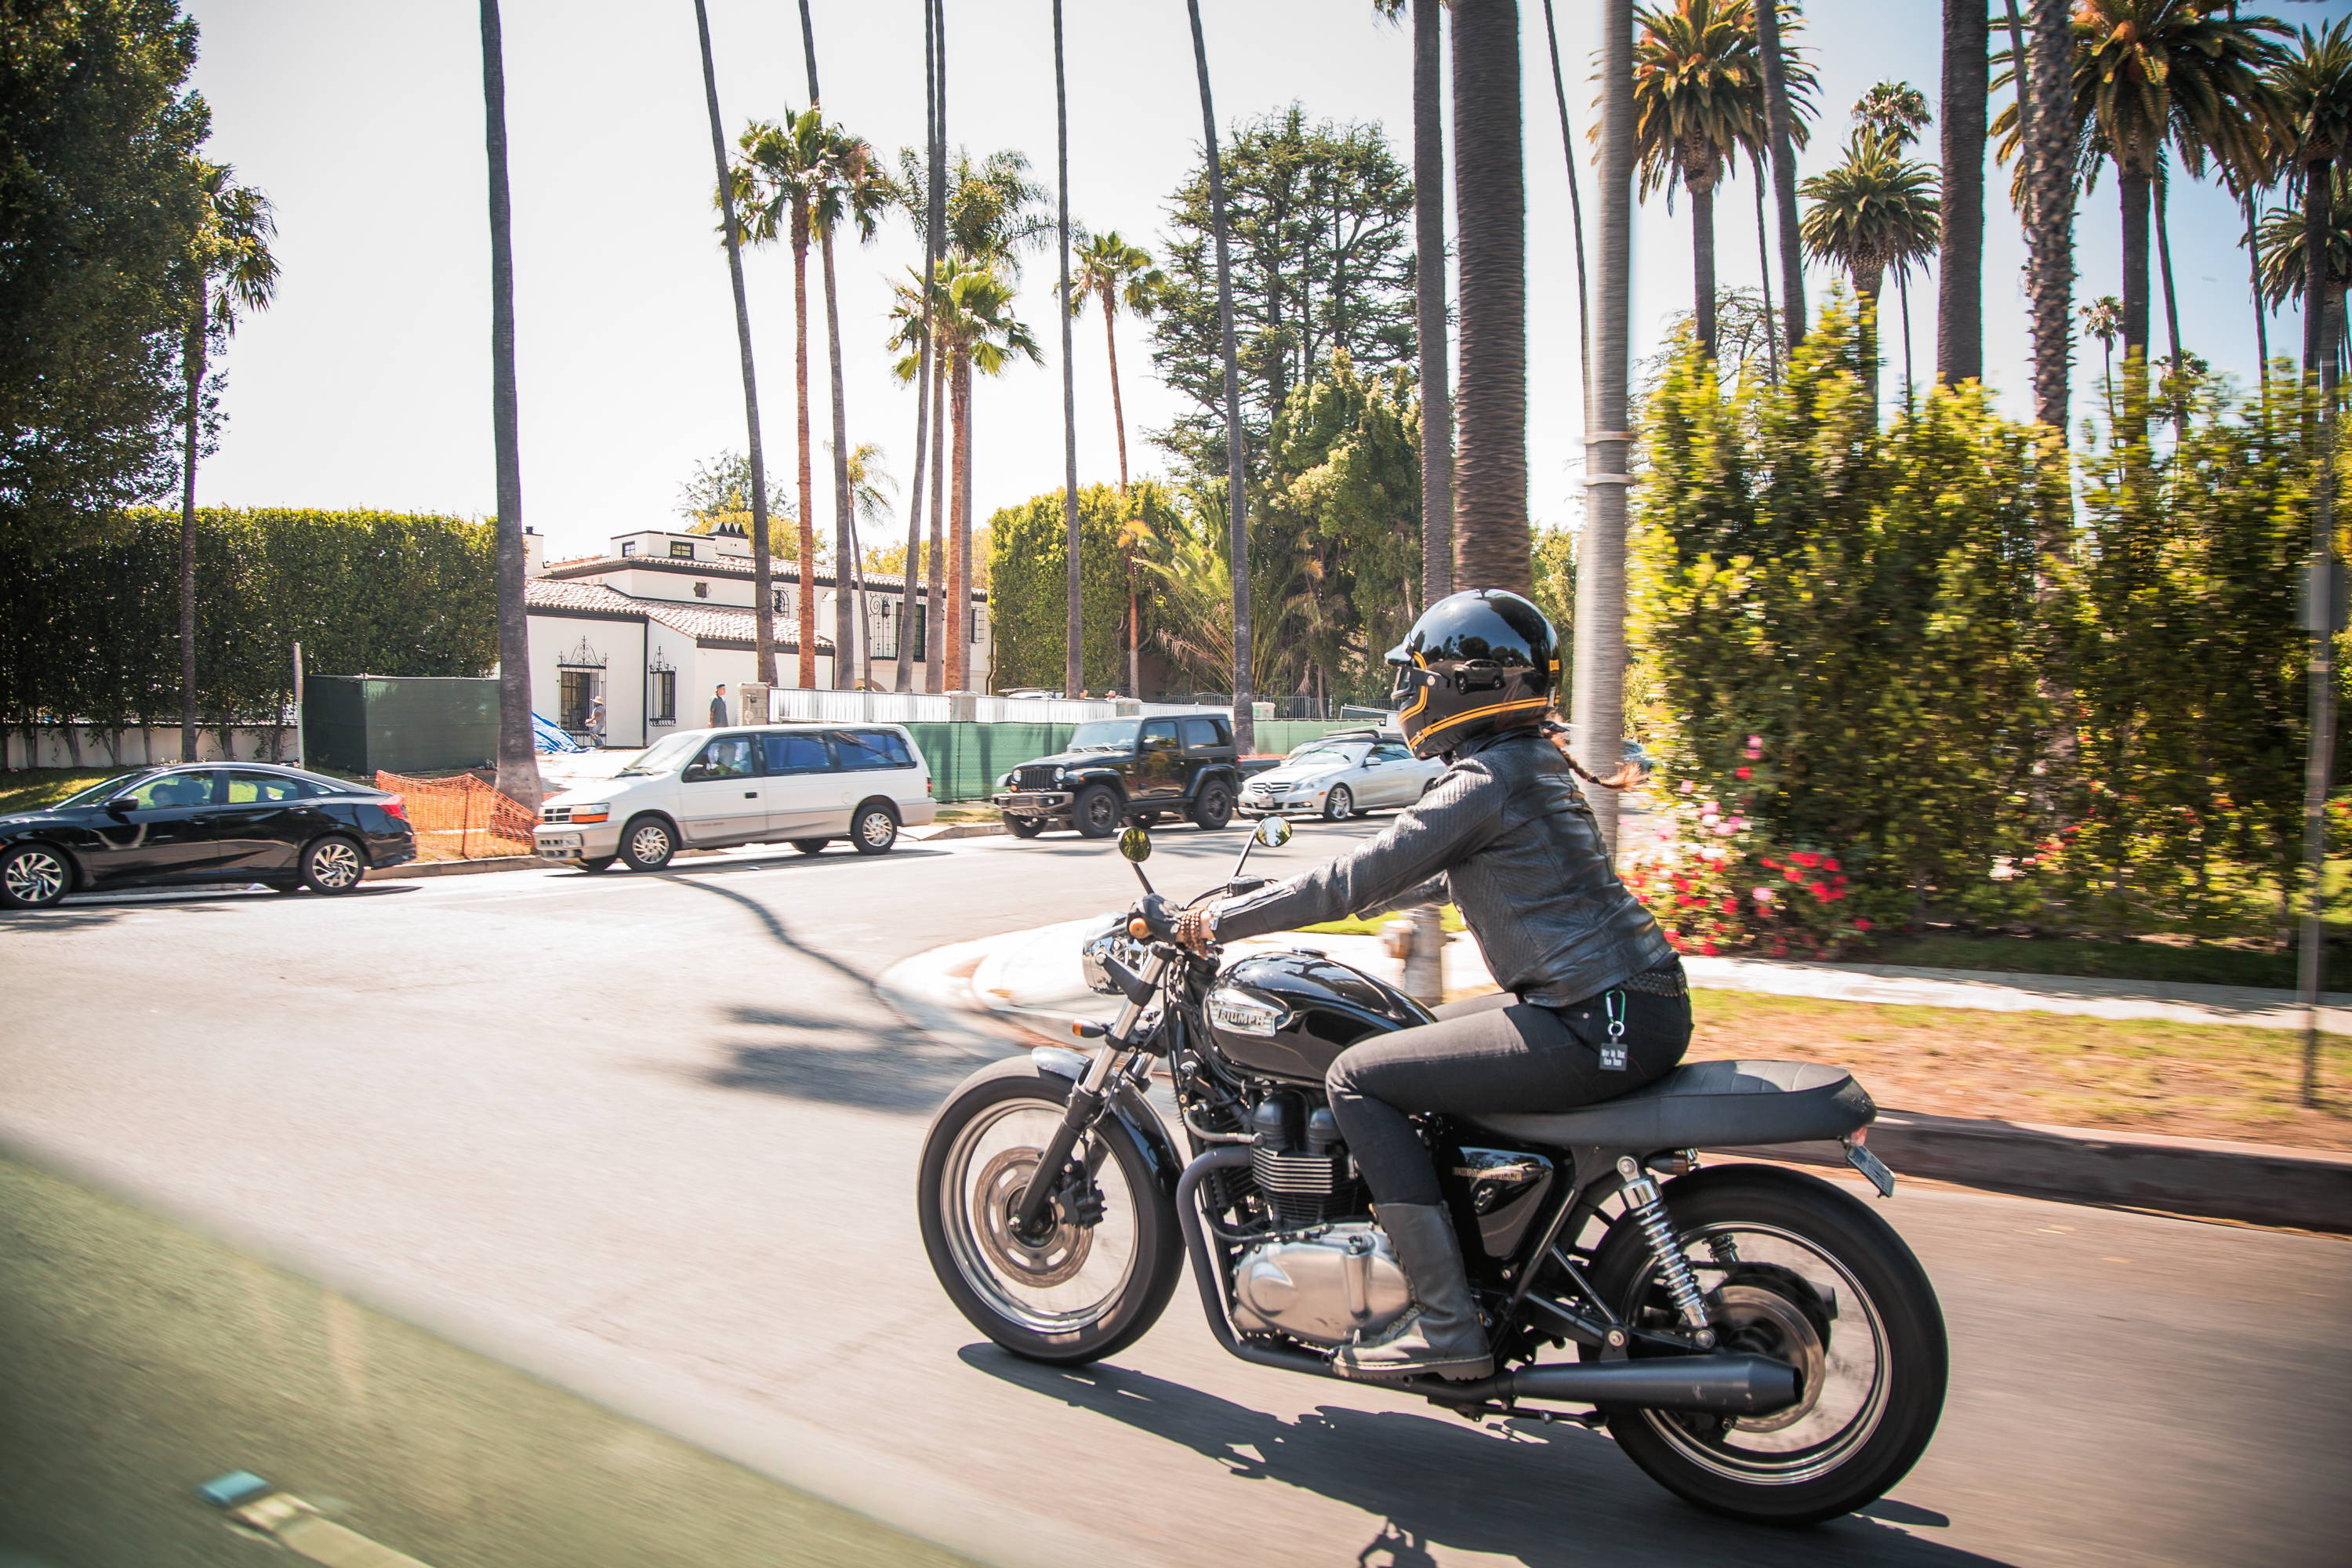 Sam cruising town on her Triumph Bonneville with bits from British Customs